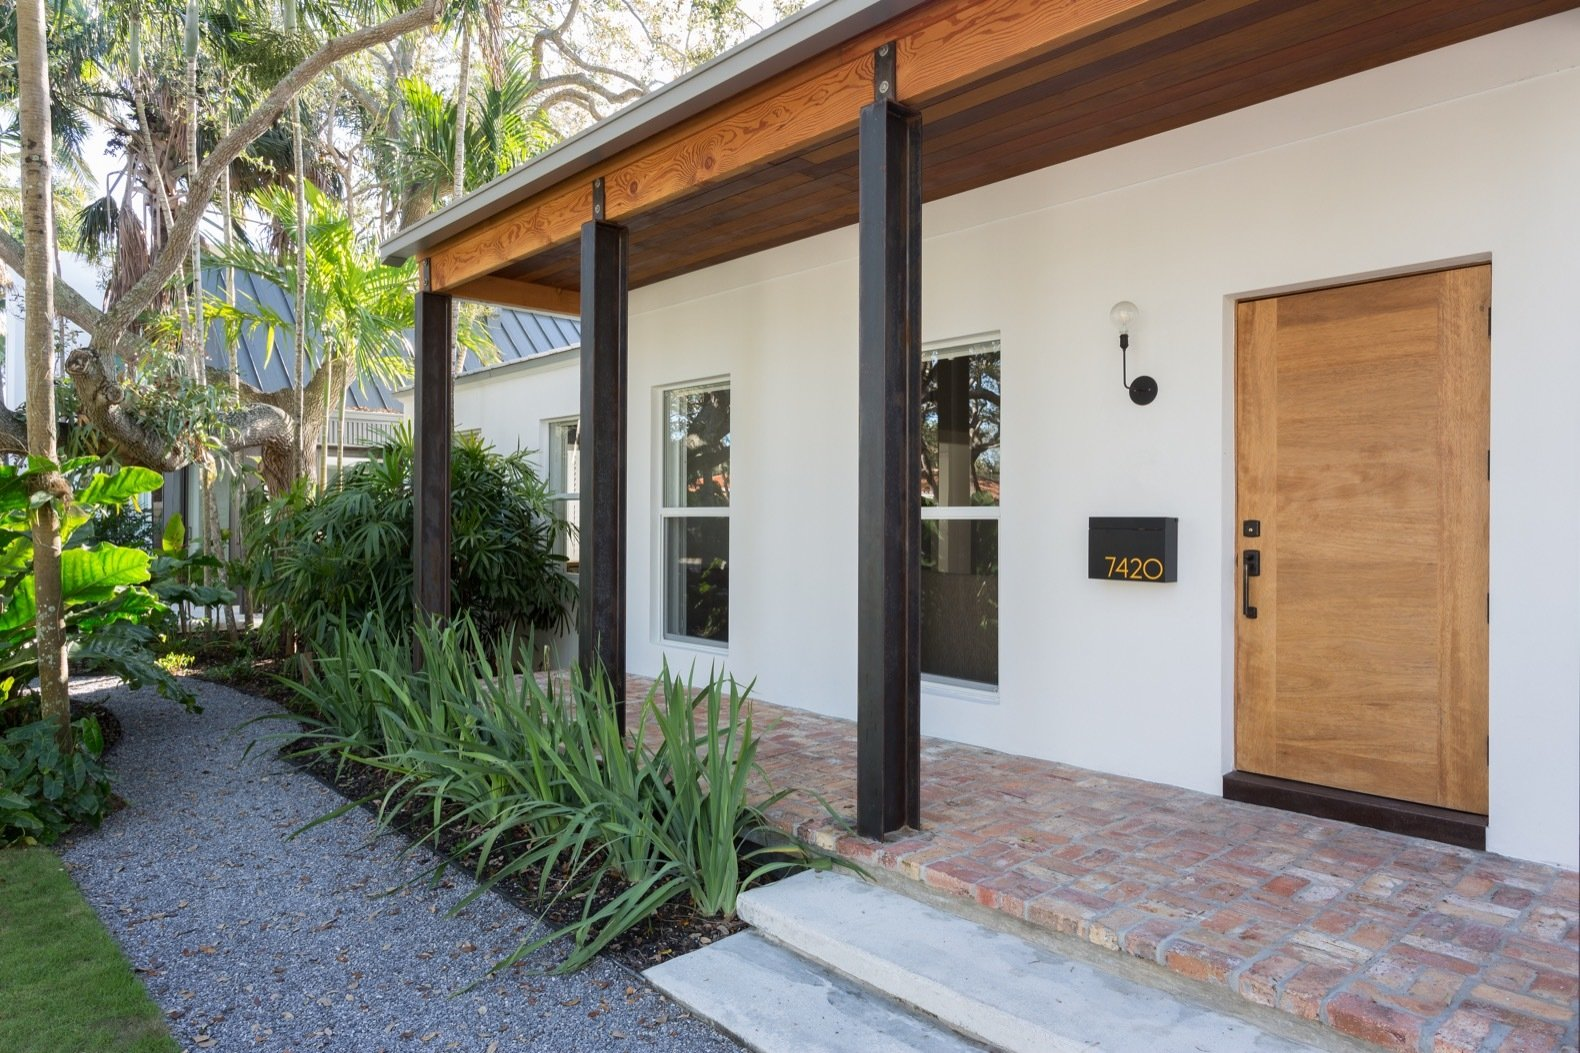 Outdoor, Front Yard, Shrubs, Pavers Patio, Porch, Deck, Trees, Hardscapes, and Hanging Lighting The existing home has been painted a crisp white, while timber elements and brick flooring lend warmth to the space.    Photo 5 of 21 in A Minimalist Bungalow in Miami Welcomes a Sleek New Addition